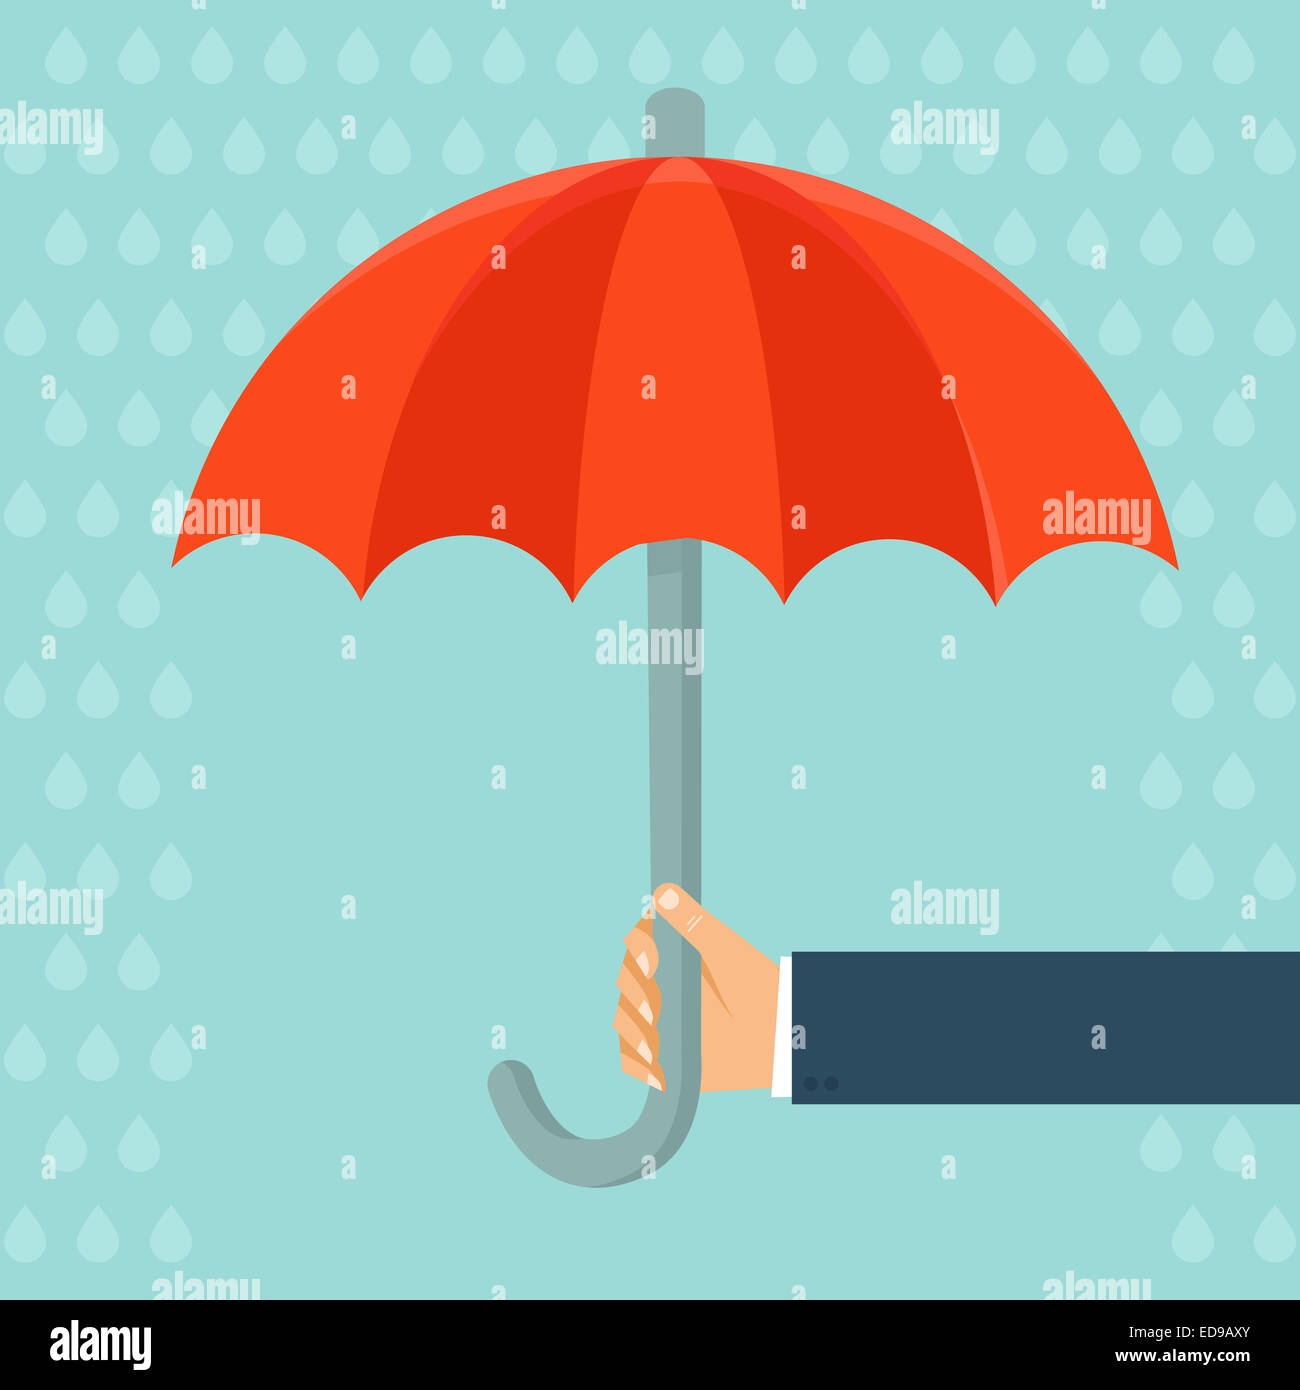 Insurance agent holding umbrella - concept in flat style - Stock Image